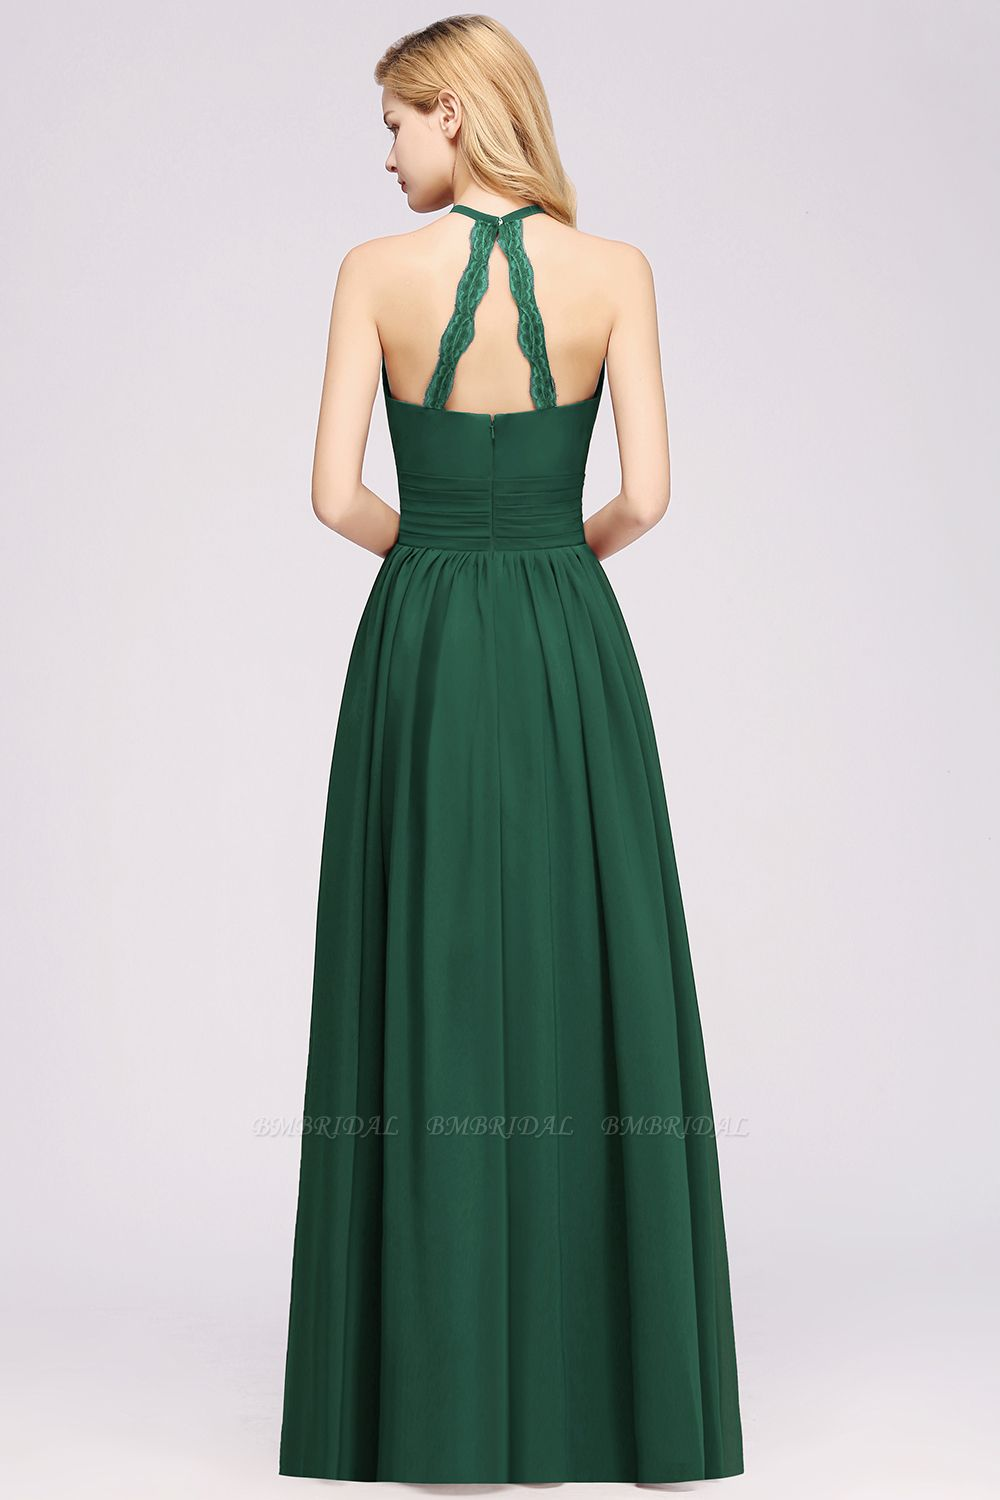 https://www.bmbridal.com/high-neck-halter-bridesmaid-dress-g129?cate_2=36